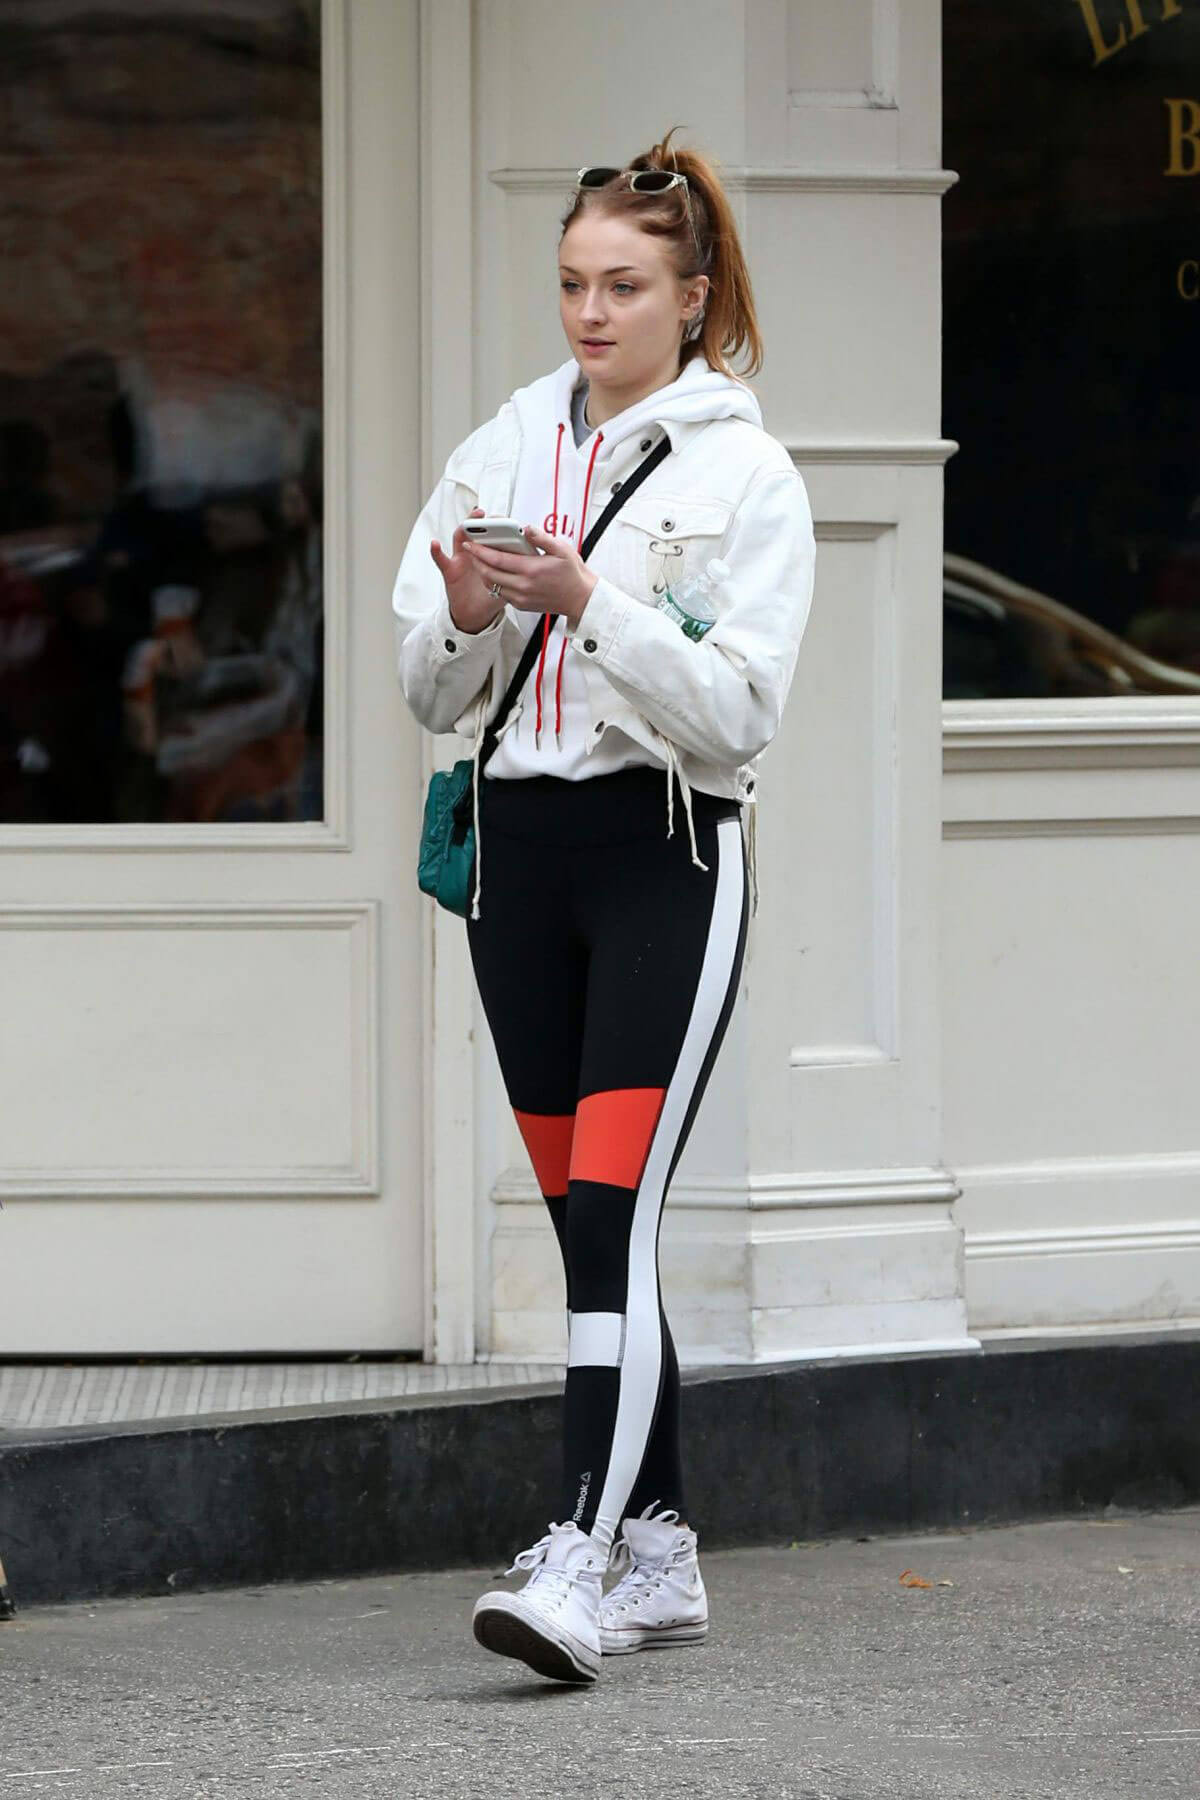 Sophie Turner in Tights Stills Out and About in New York